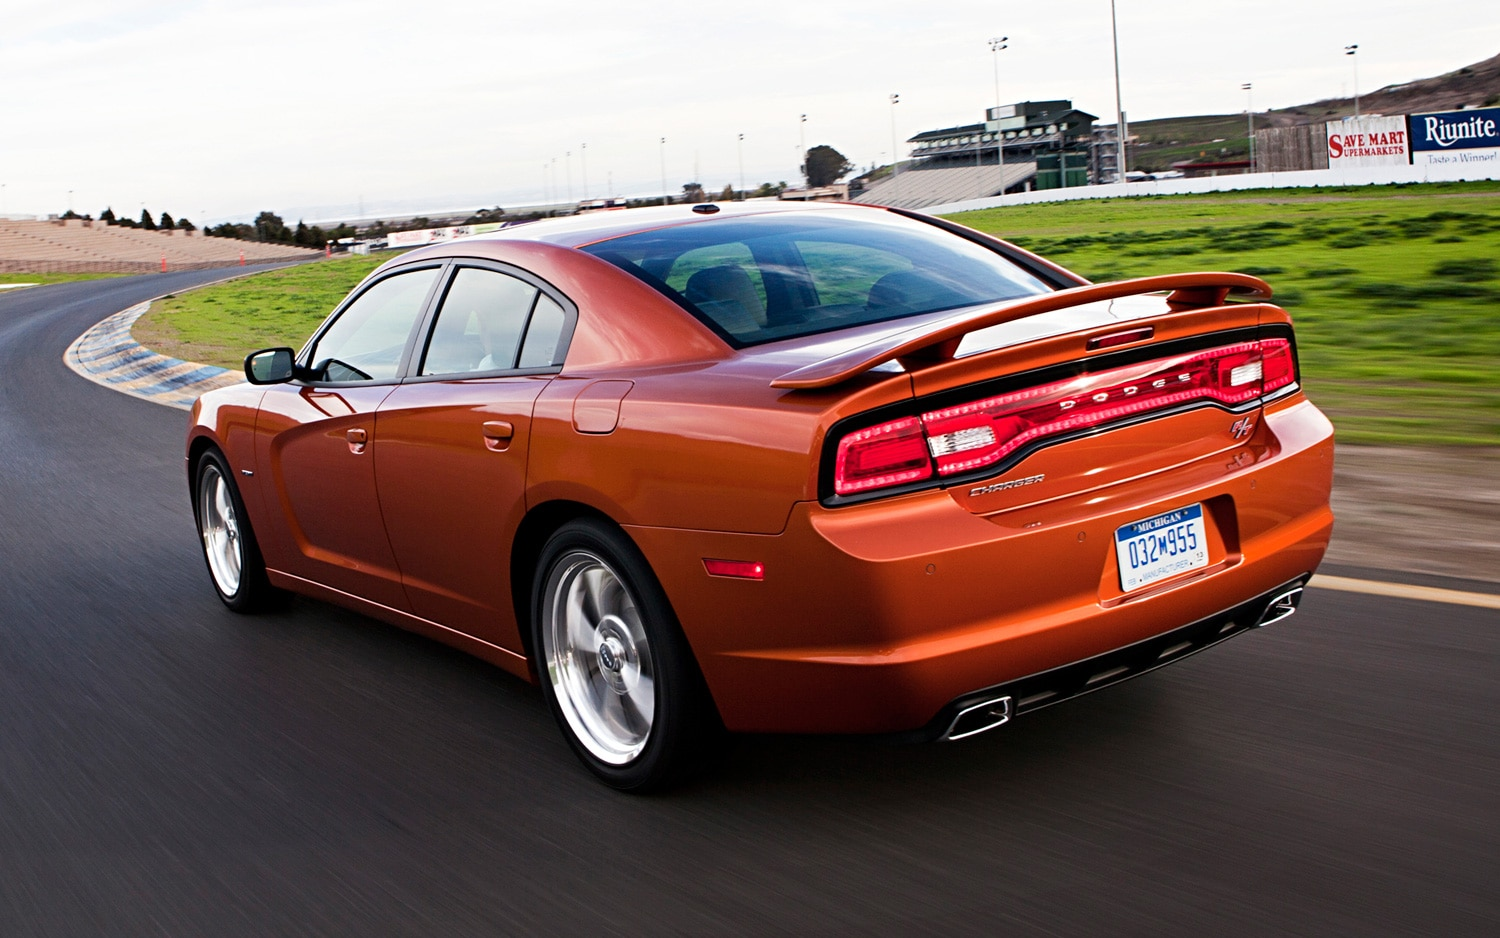 2012 chrysler 300 2012 dodge charger awarded five star safety ratings. Black Bedroom Furniture Sets. Home Design Ideas